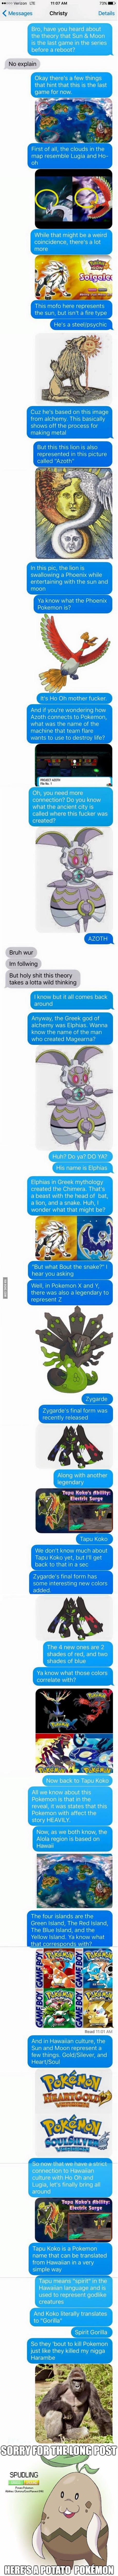 Pokémon Sun and Moon Secrets Revealed >> I AM DEEEAD I WAS EXPECTING SOME PROFOUND SHIT BUT IT WAS SO MUCH BETTER